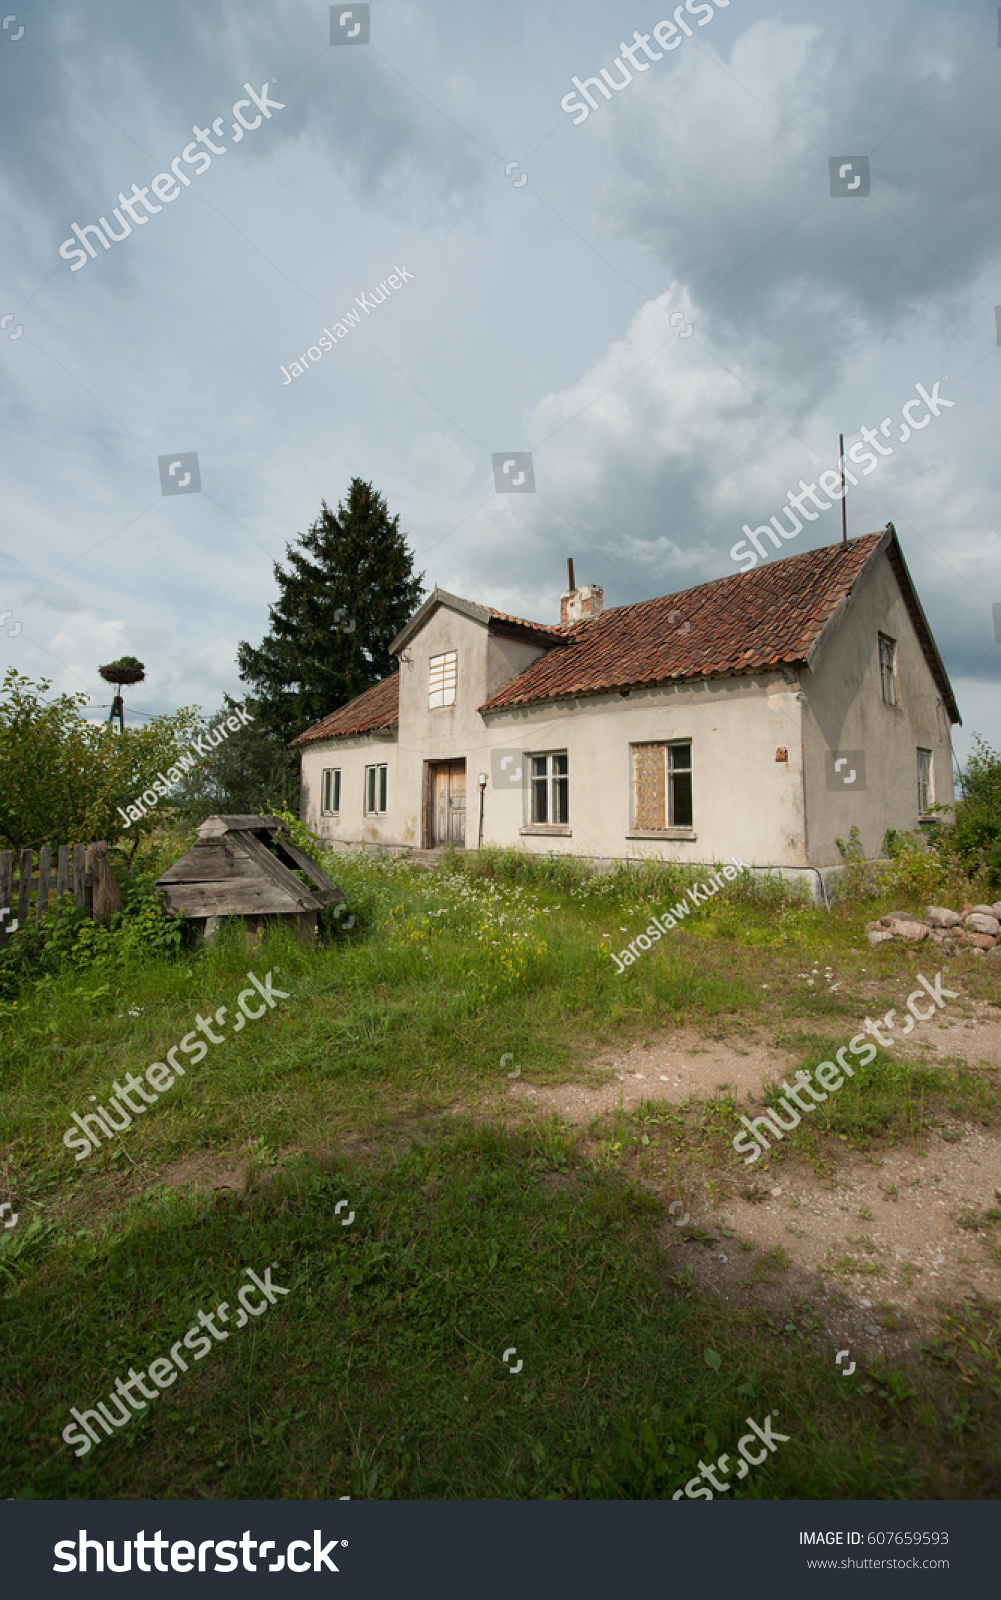 German Colonial House From The Plebiscite Period In Warmia Masuria And Powile